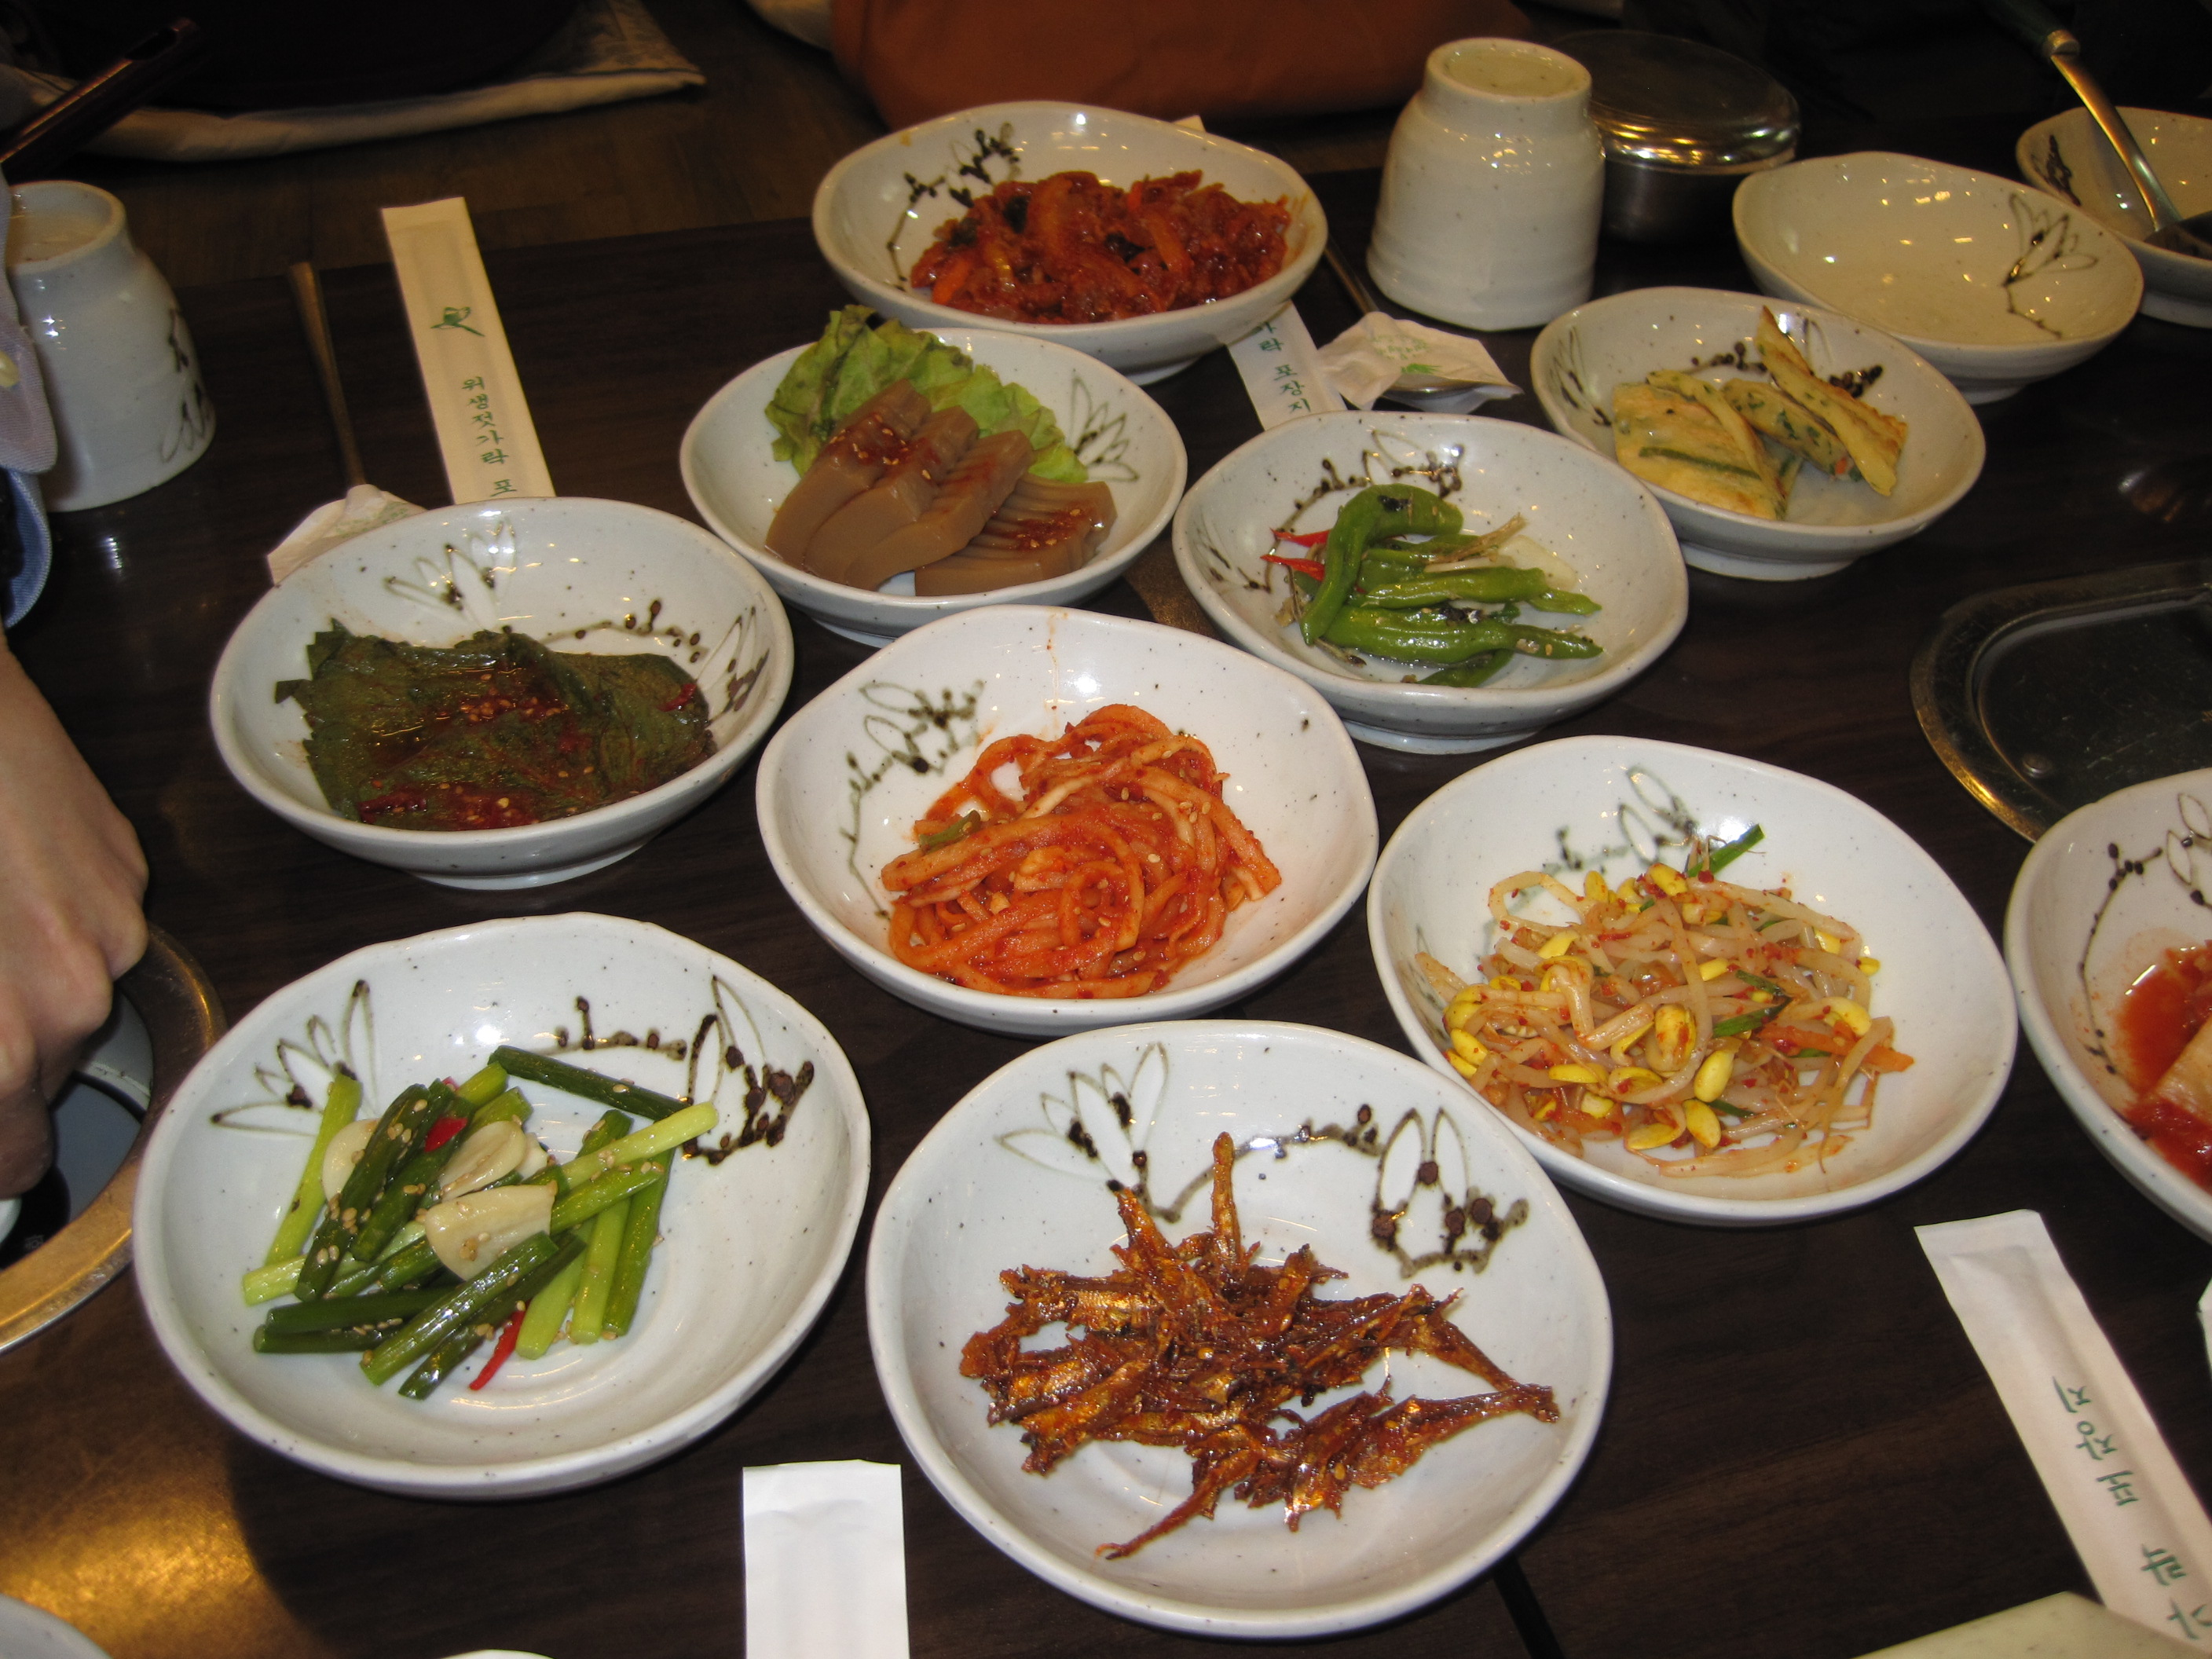 Seoul, South Korea :: Sides that came with soup. Bean sprouts, acorn extraction, dried fish, hot peppers, kimchi, other weird stuff!